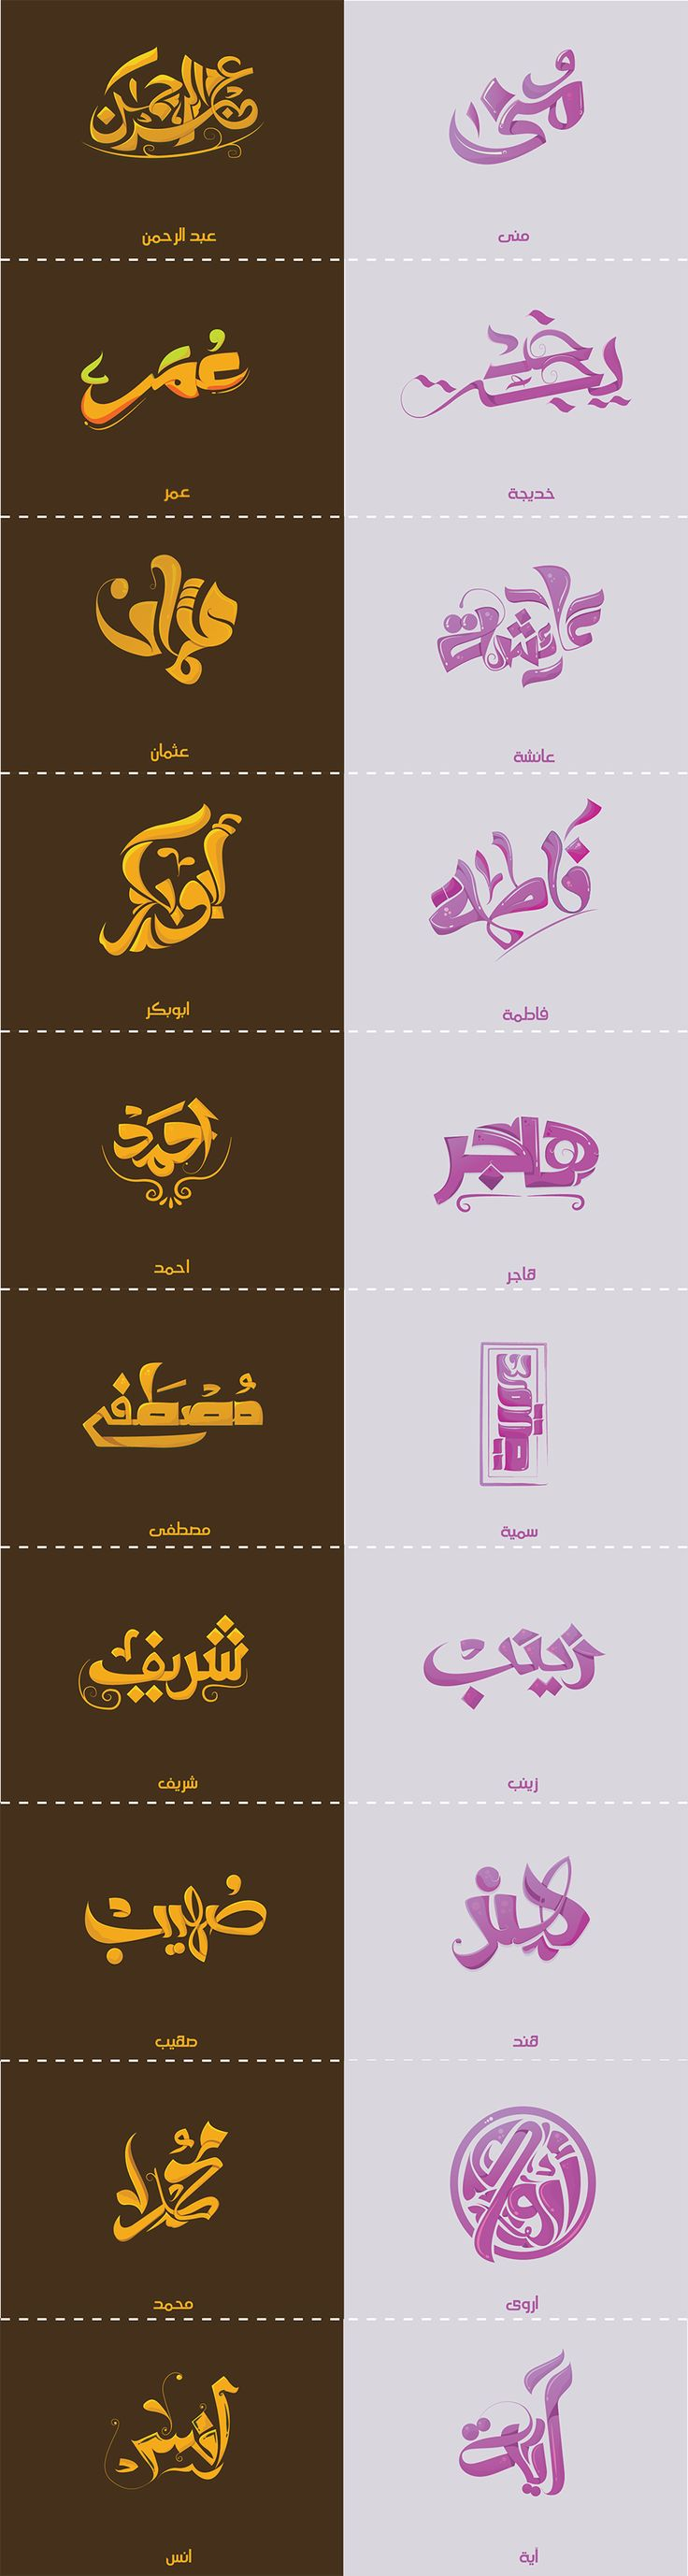 20 Arabic Typography Names on Behance